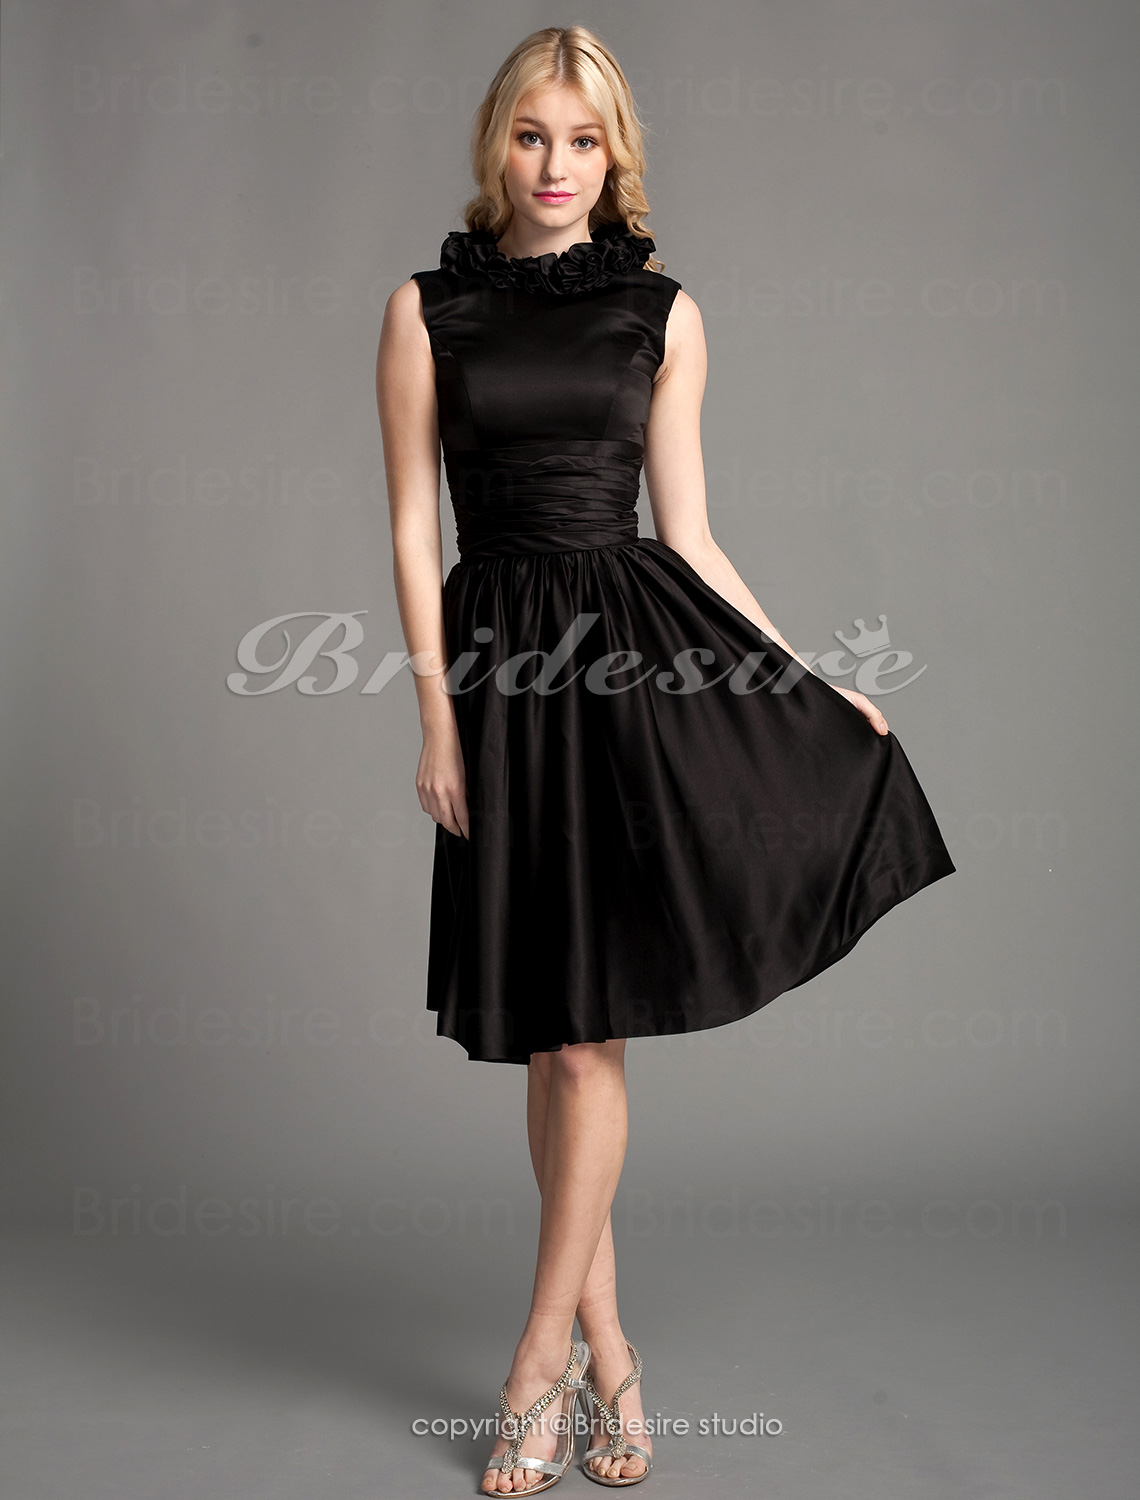 A-line Satin Knee-length Scoop Cocktail Dress